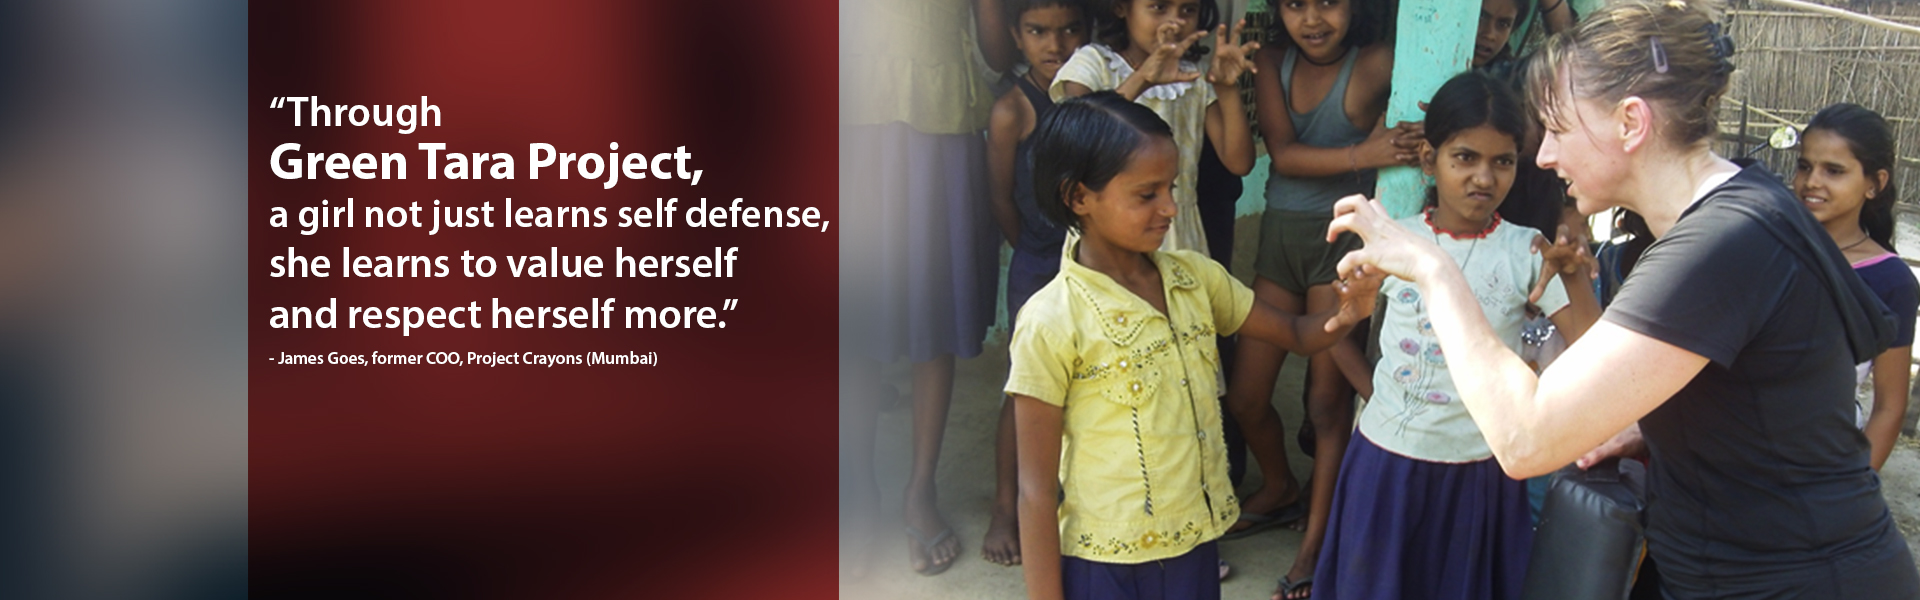 Through Green Tara Project, a girl not just learns self defense, she learns to value herself and respect herself more.